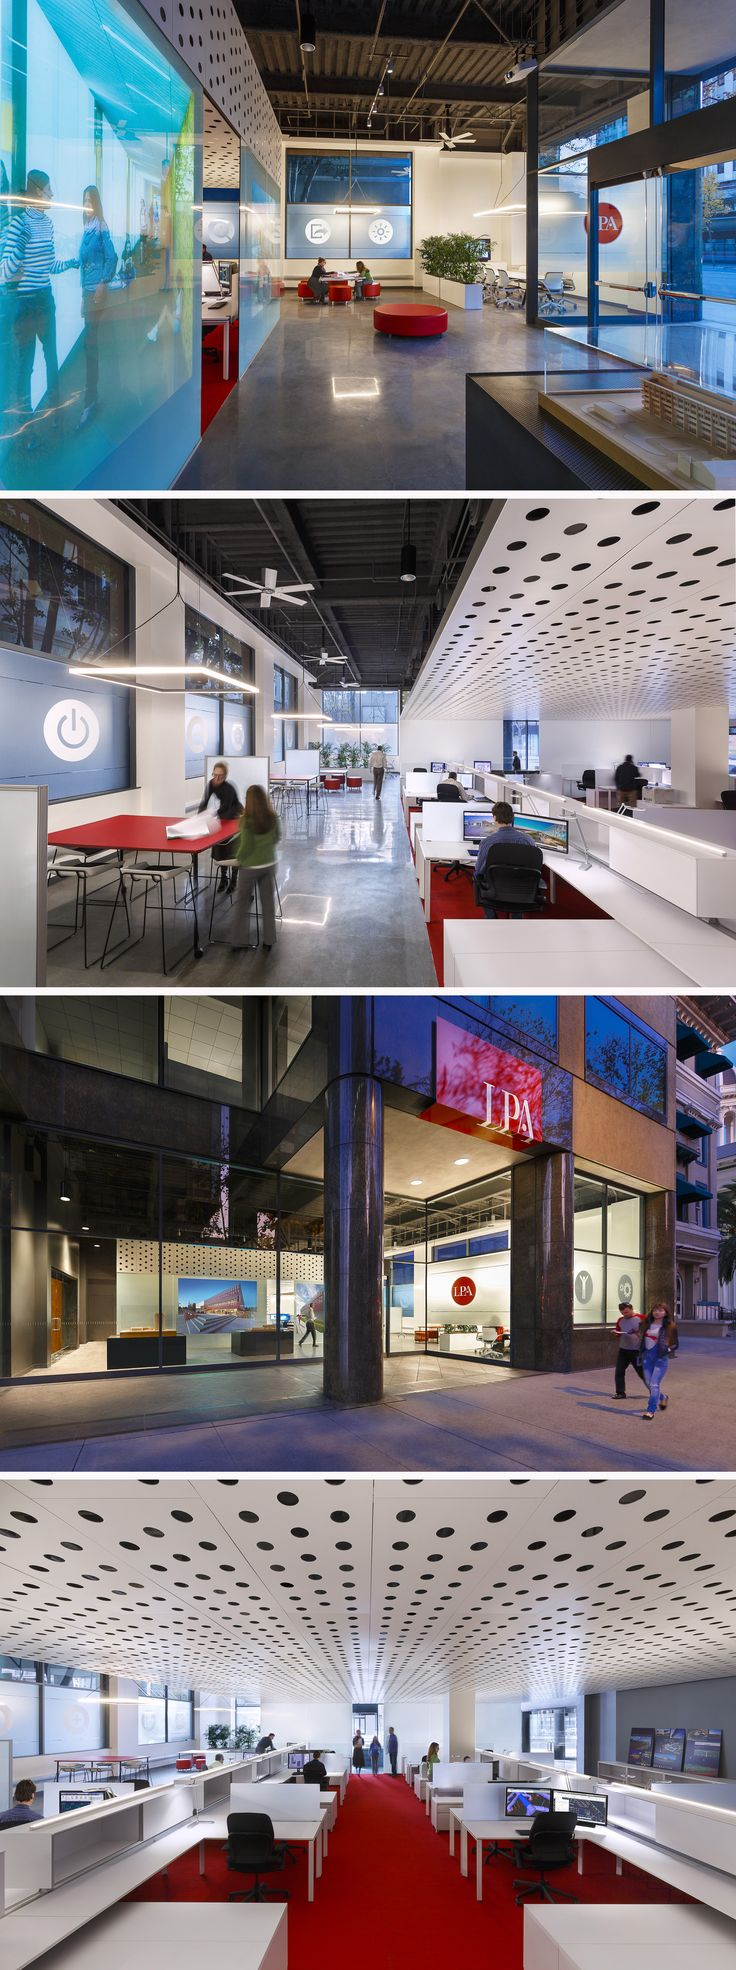 LPA Architects shares stunning photos and the design inspiration behind  their new workspace in San Jose